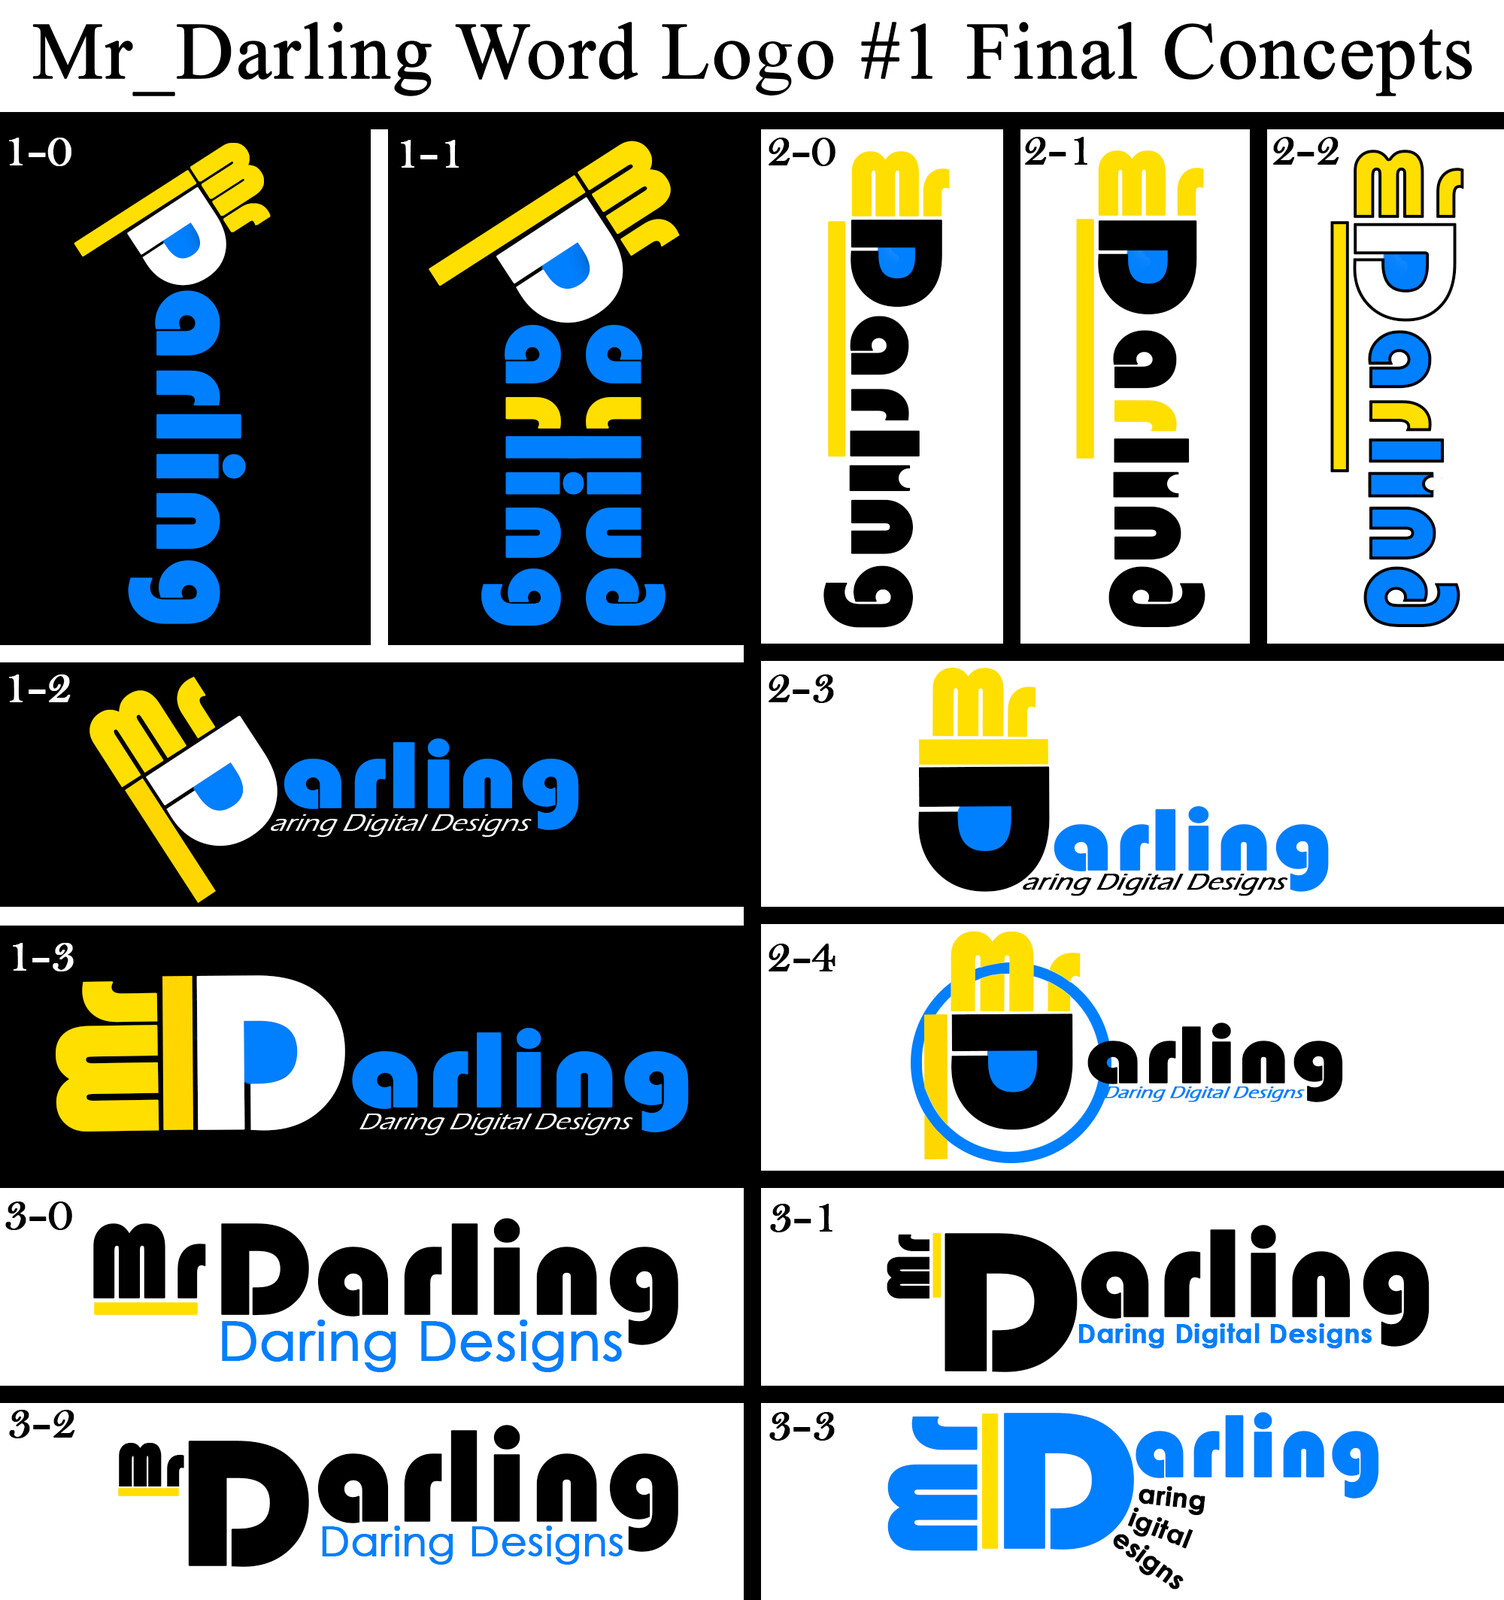 Second Round of Mr_Darling Logotype Concepts